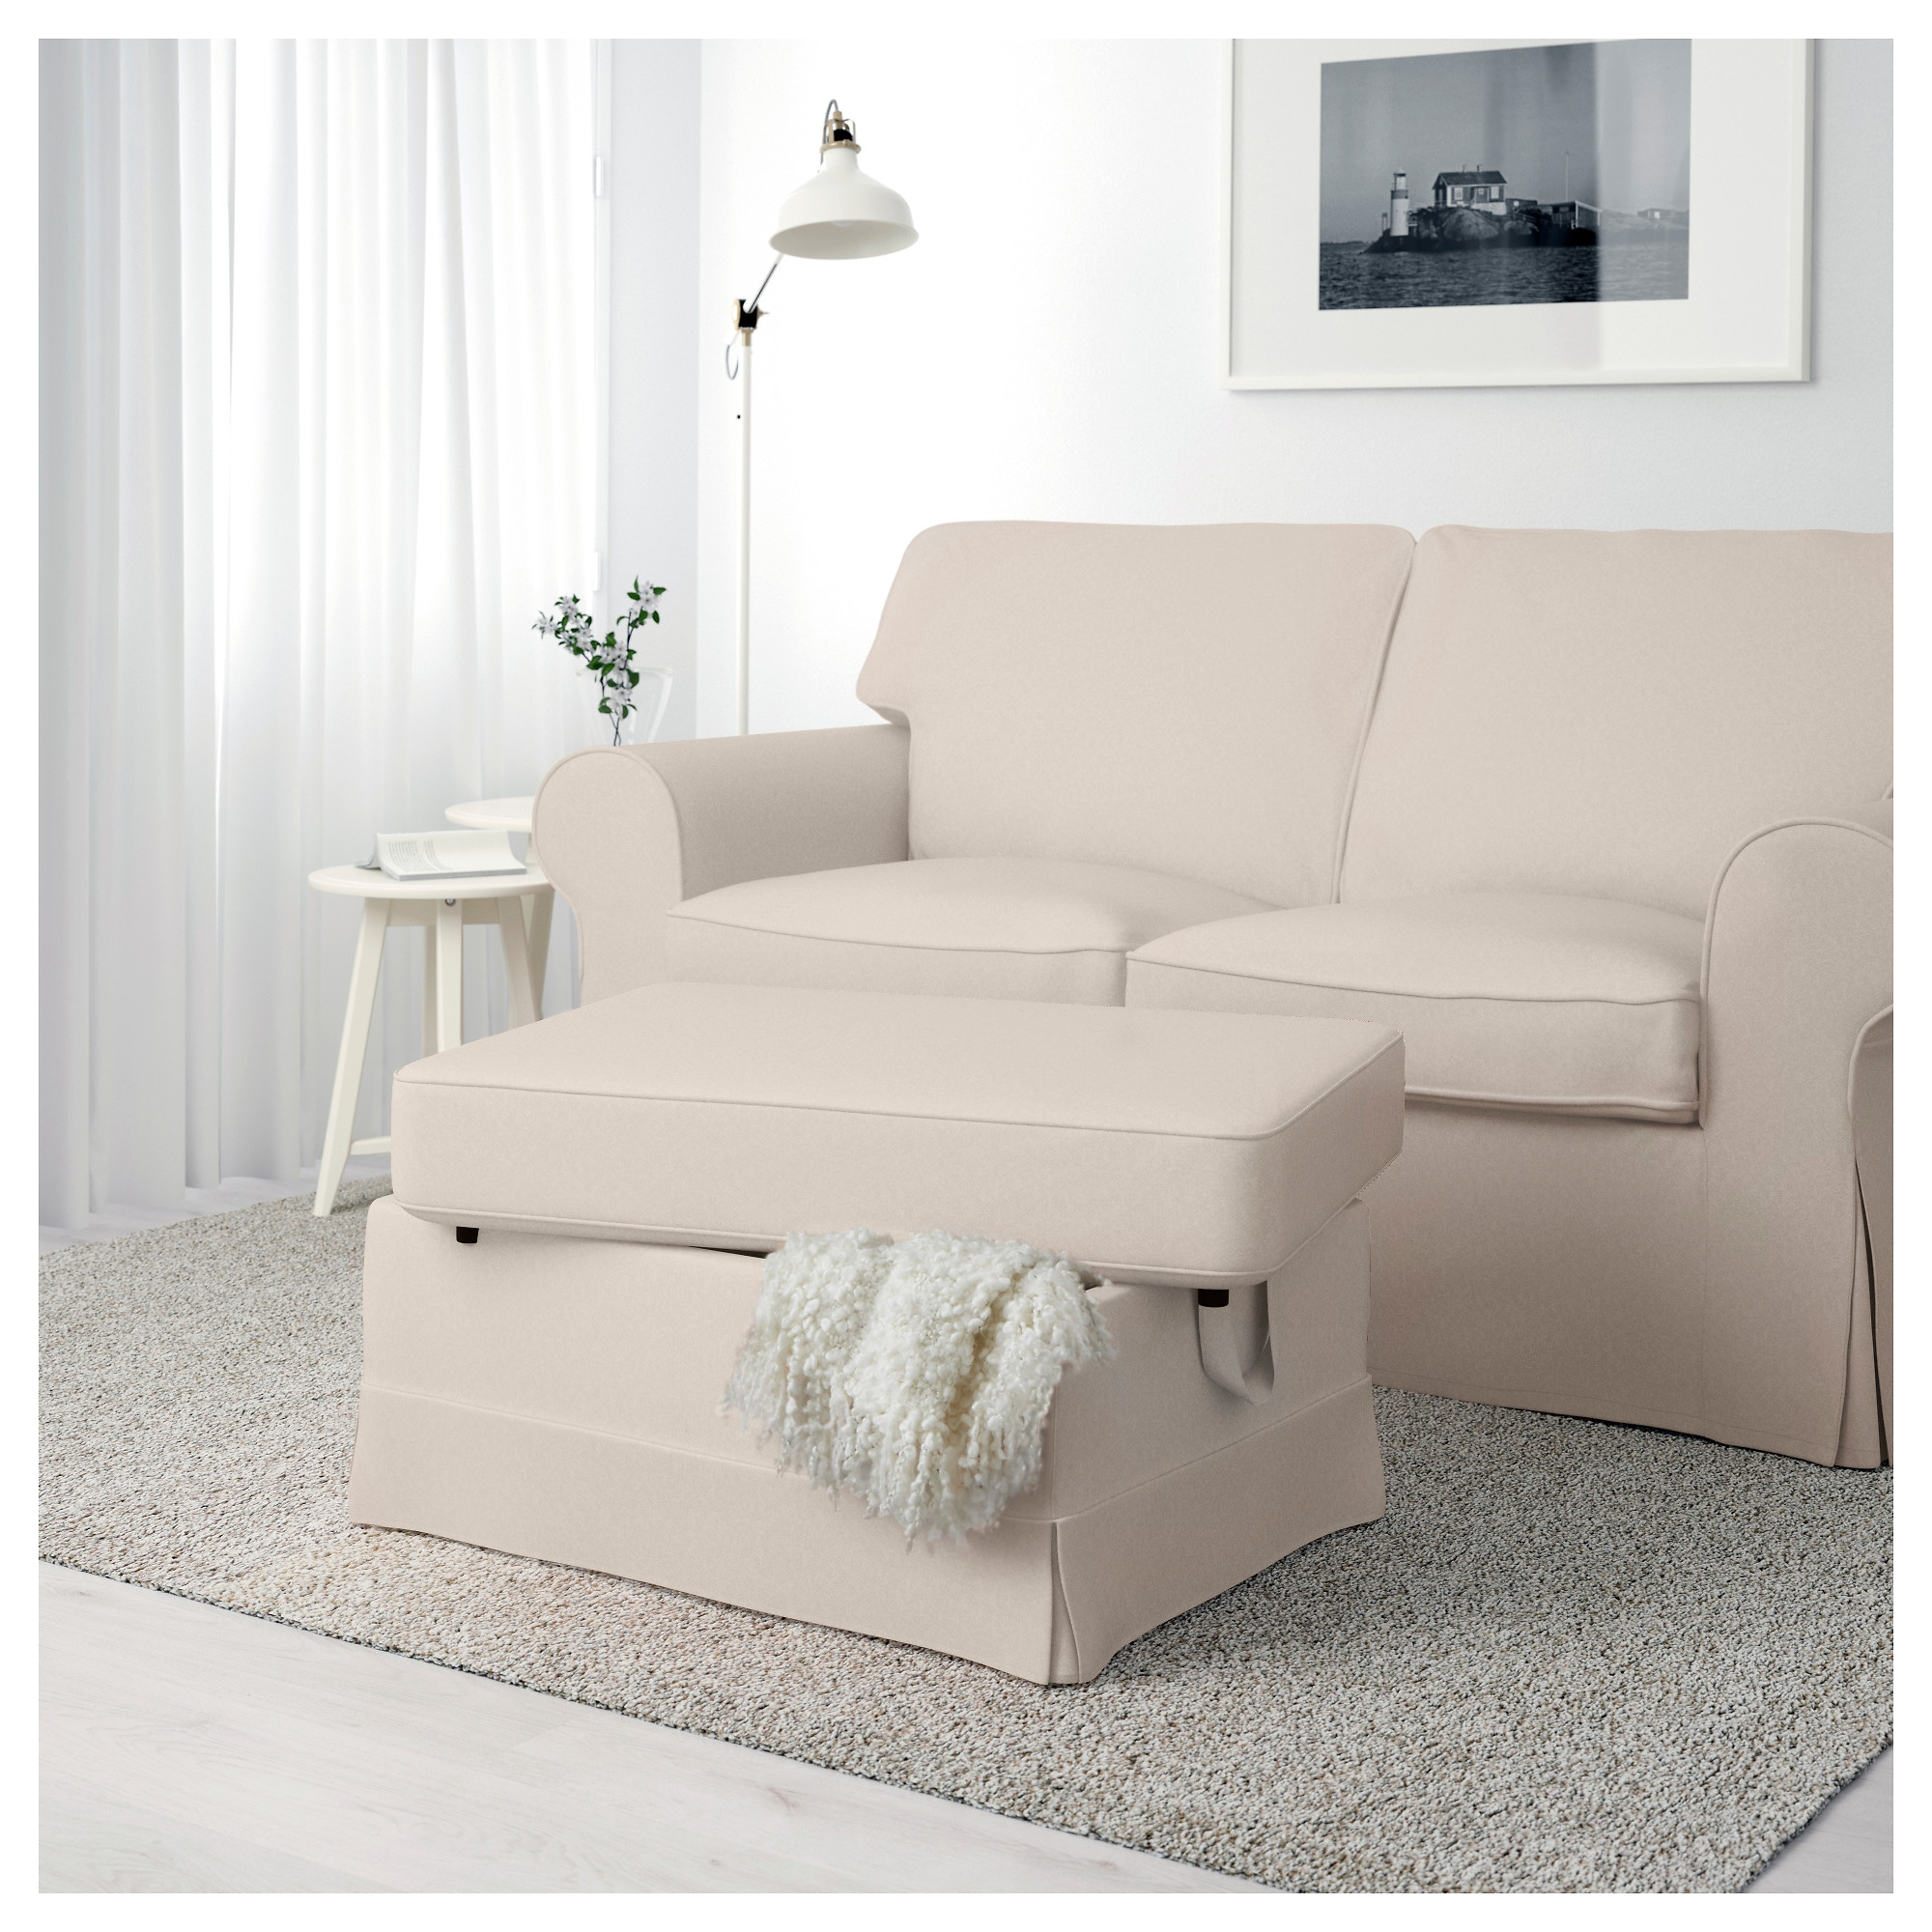 : ikea ektorp with chaise - Sectionals, Sofas & Couches